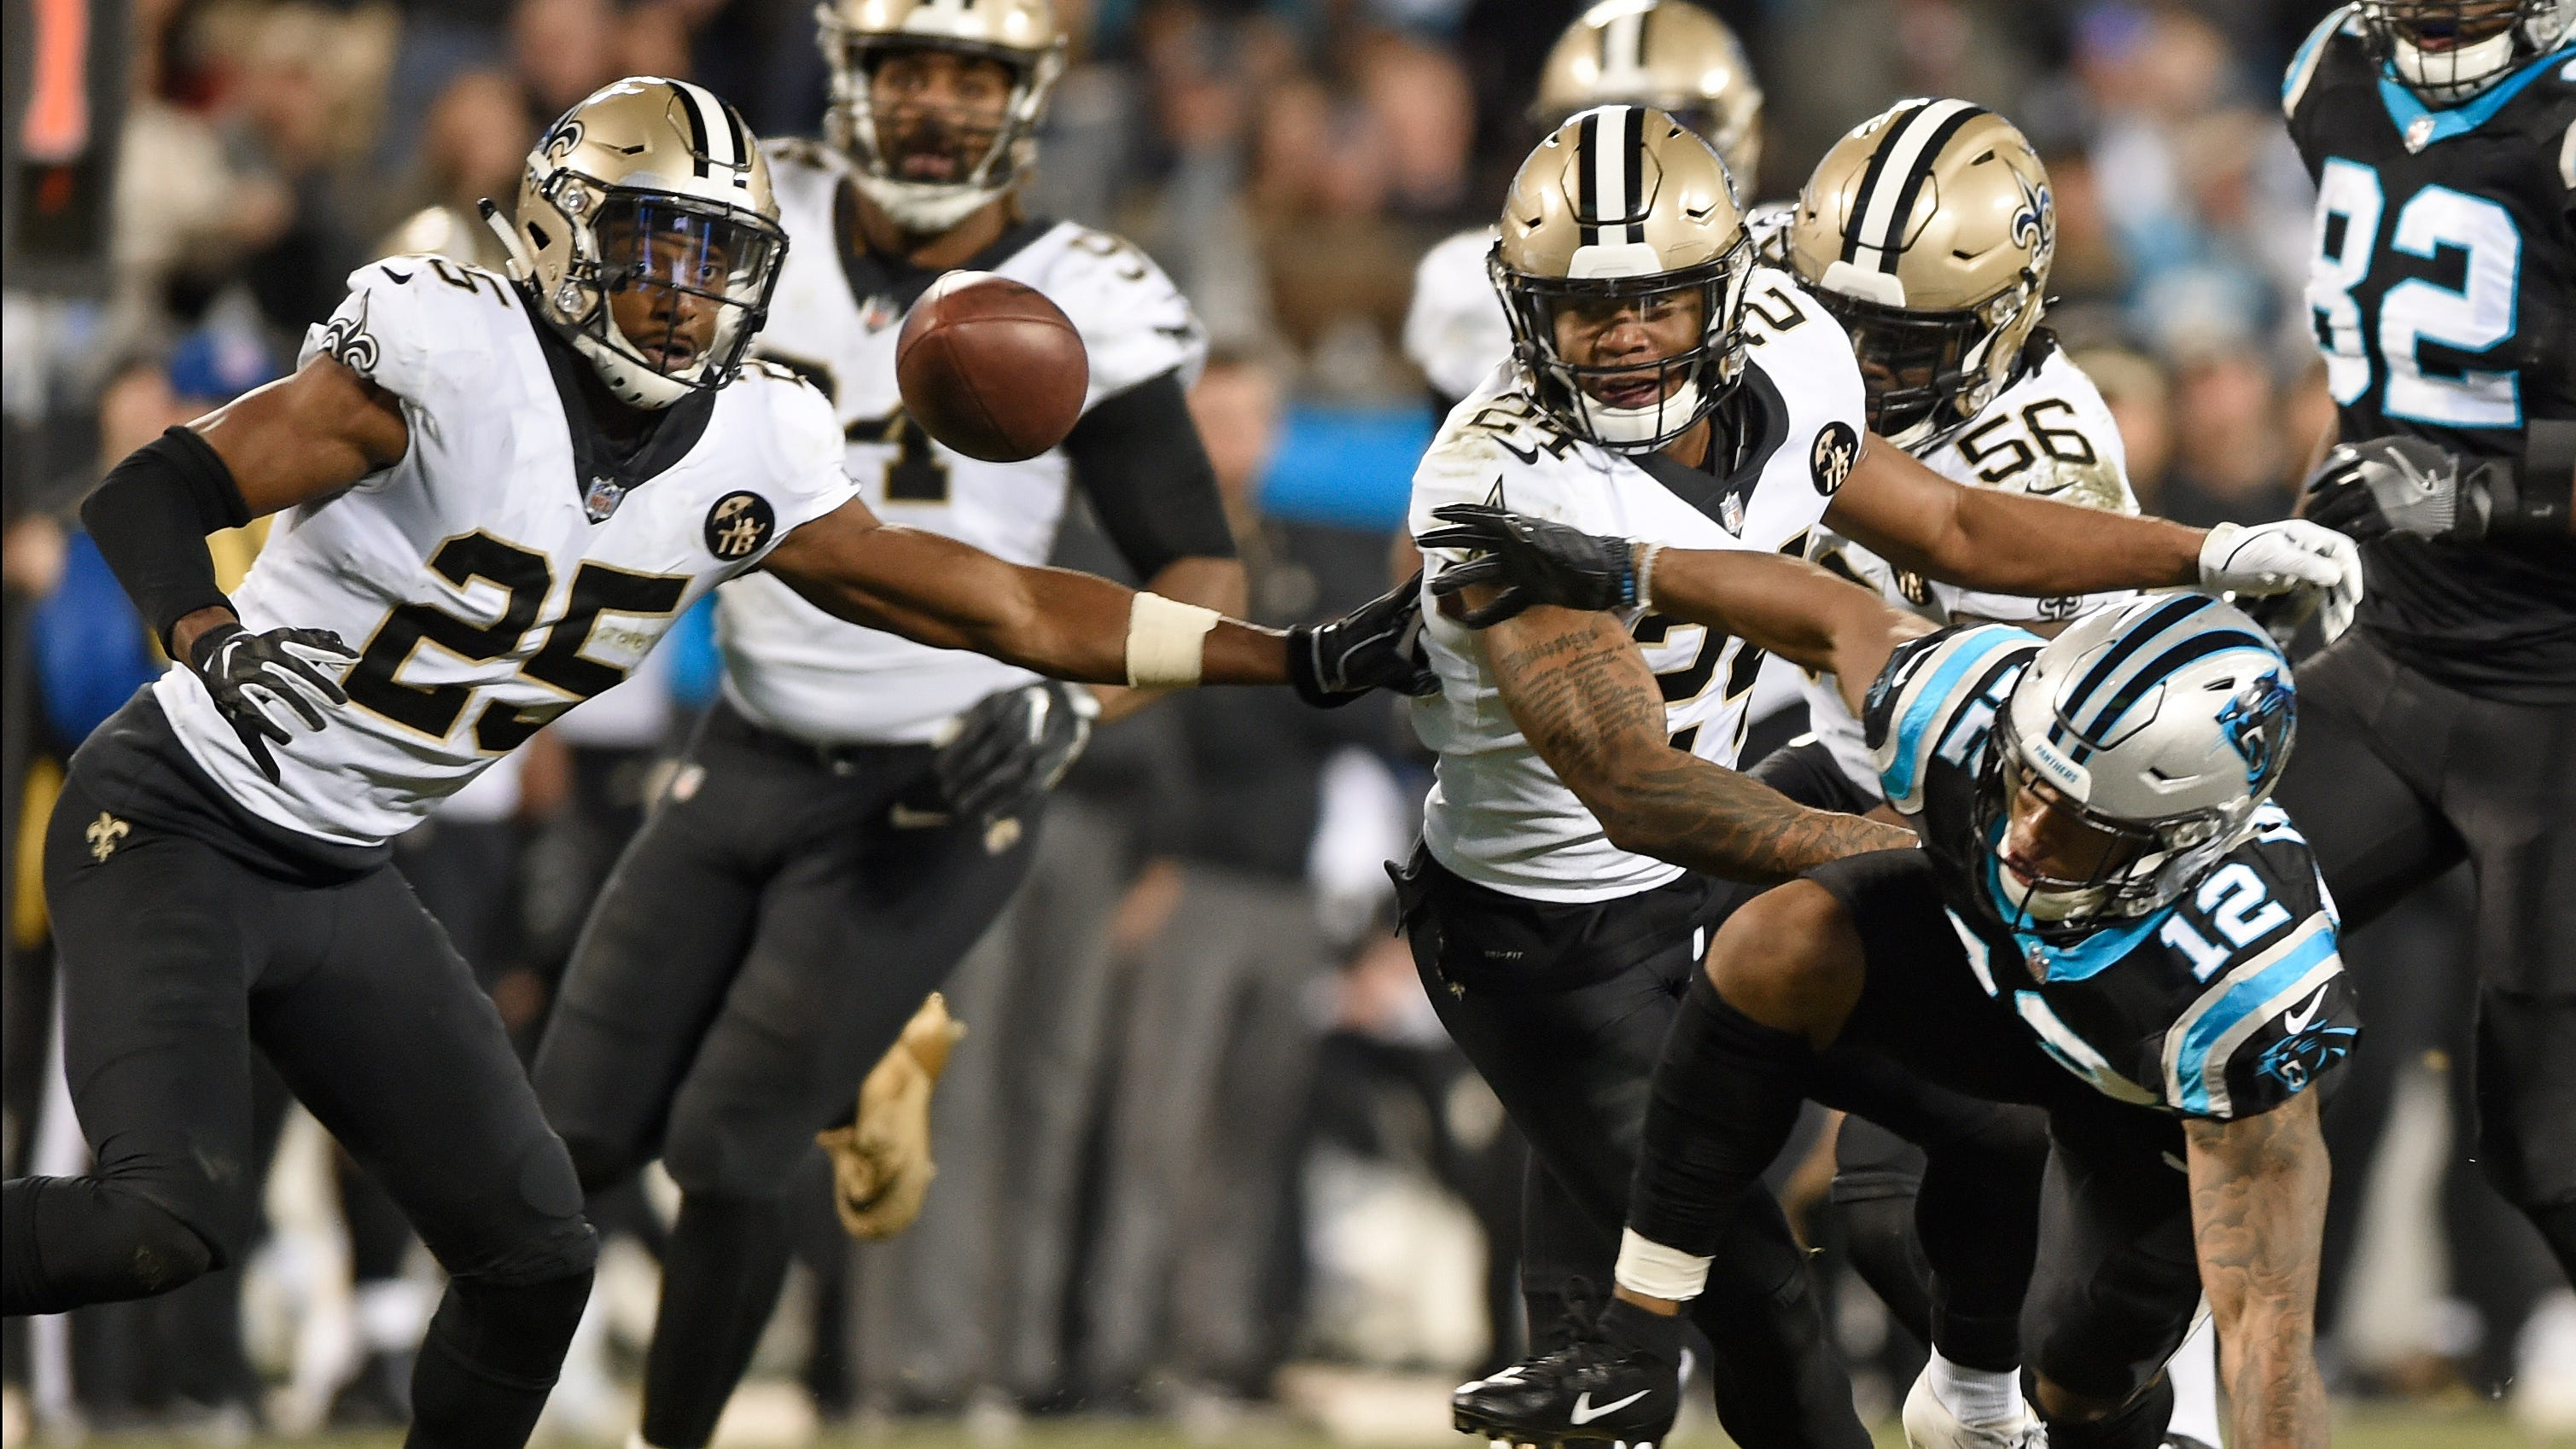 New Orleans defeated the Carolina Panthers 12-9 on Monday night to take a big step toward locking up home-field advantage in the NFC playoffs.